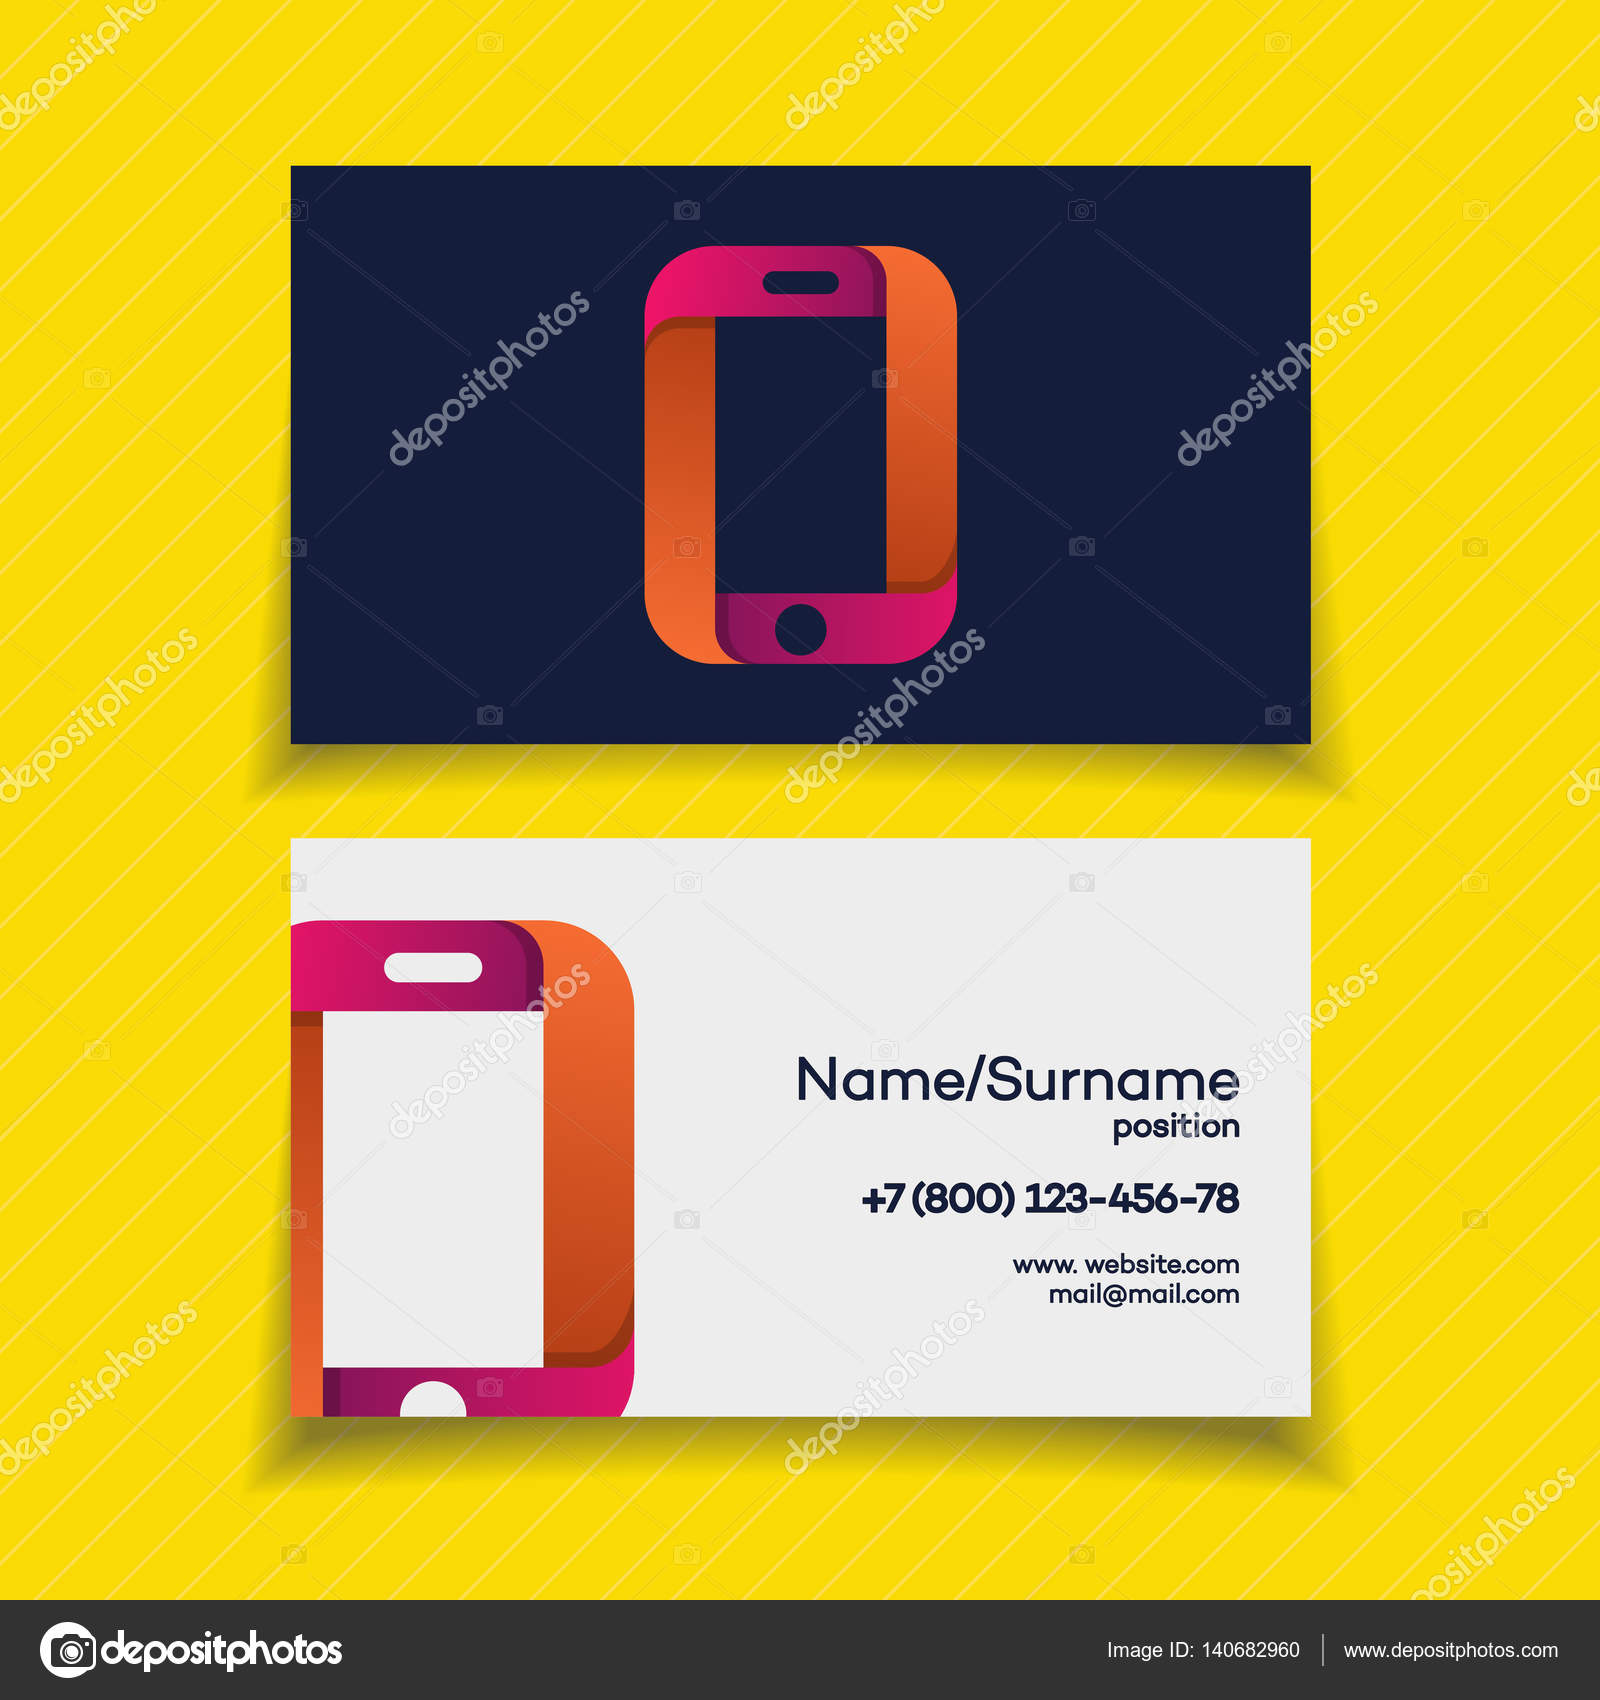 Business card design template with phone logo — Stock Vector ...